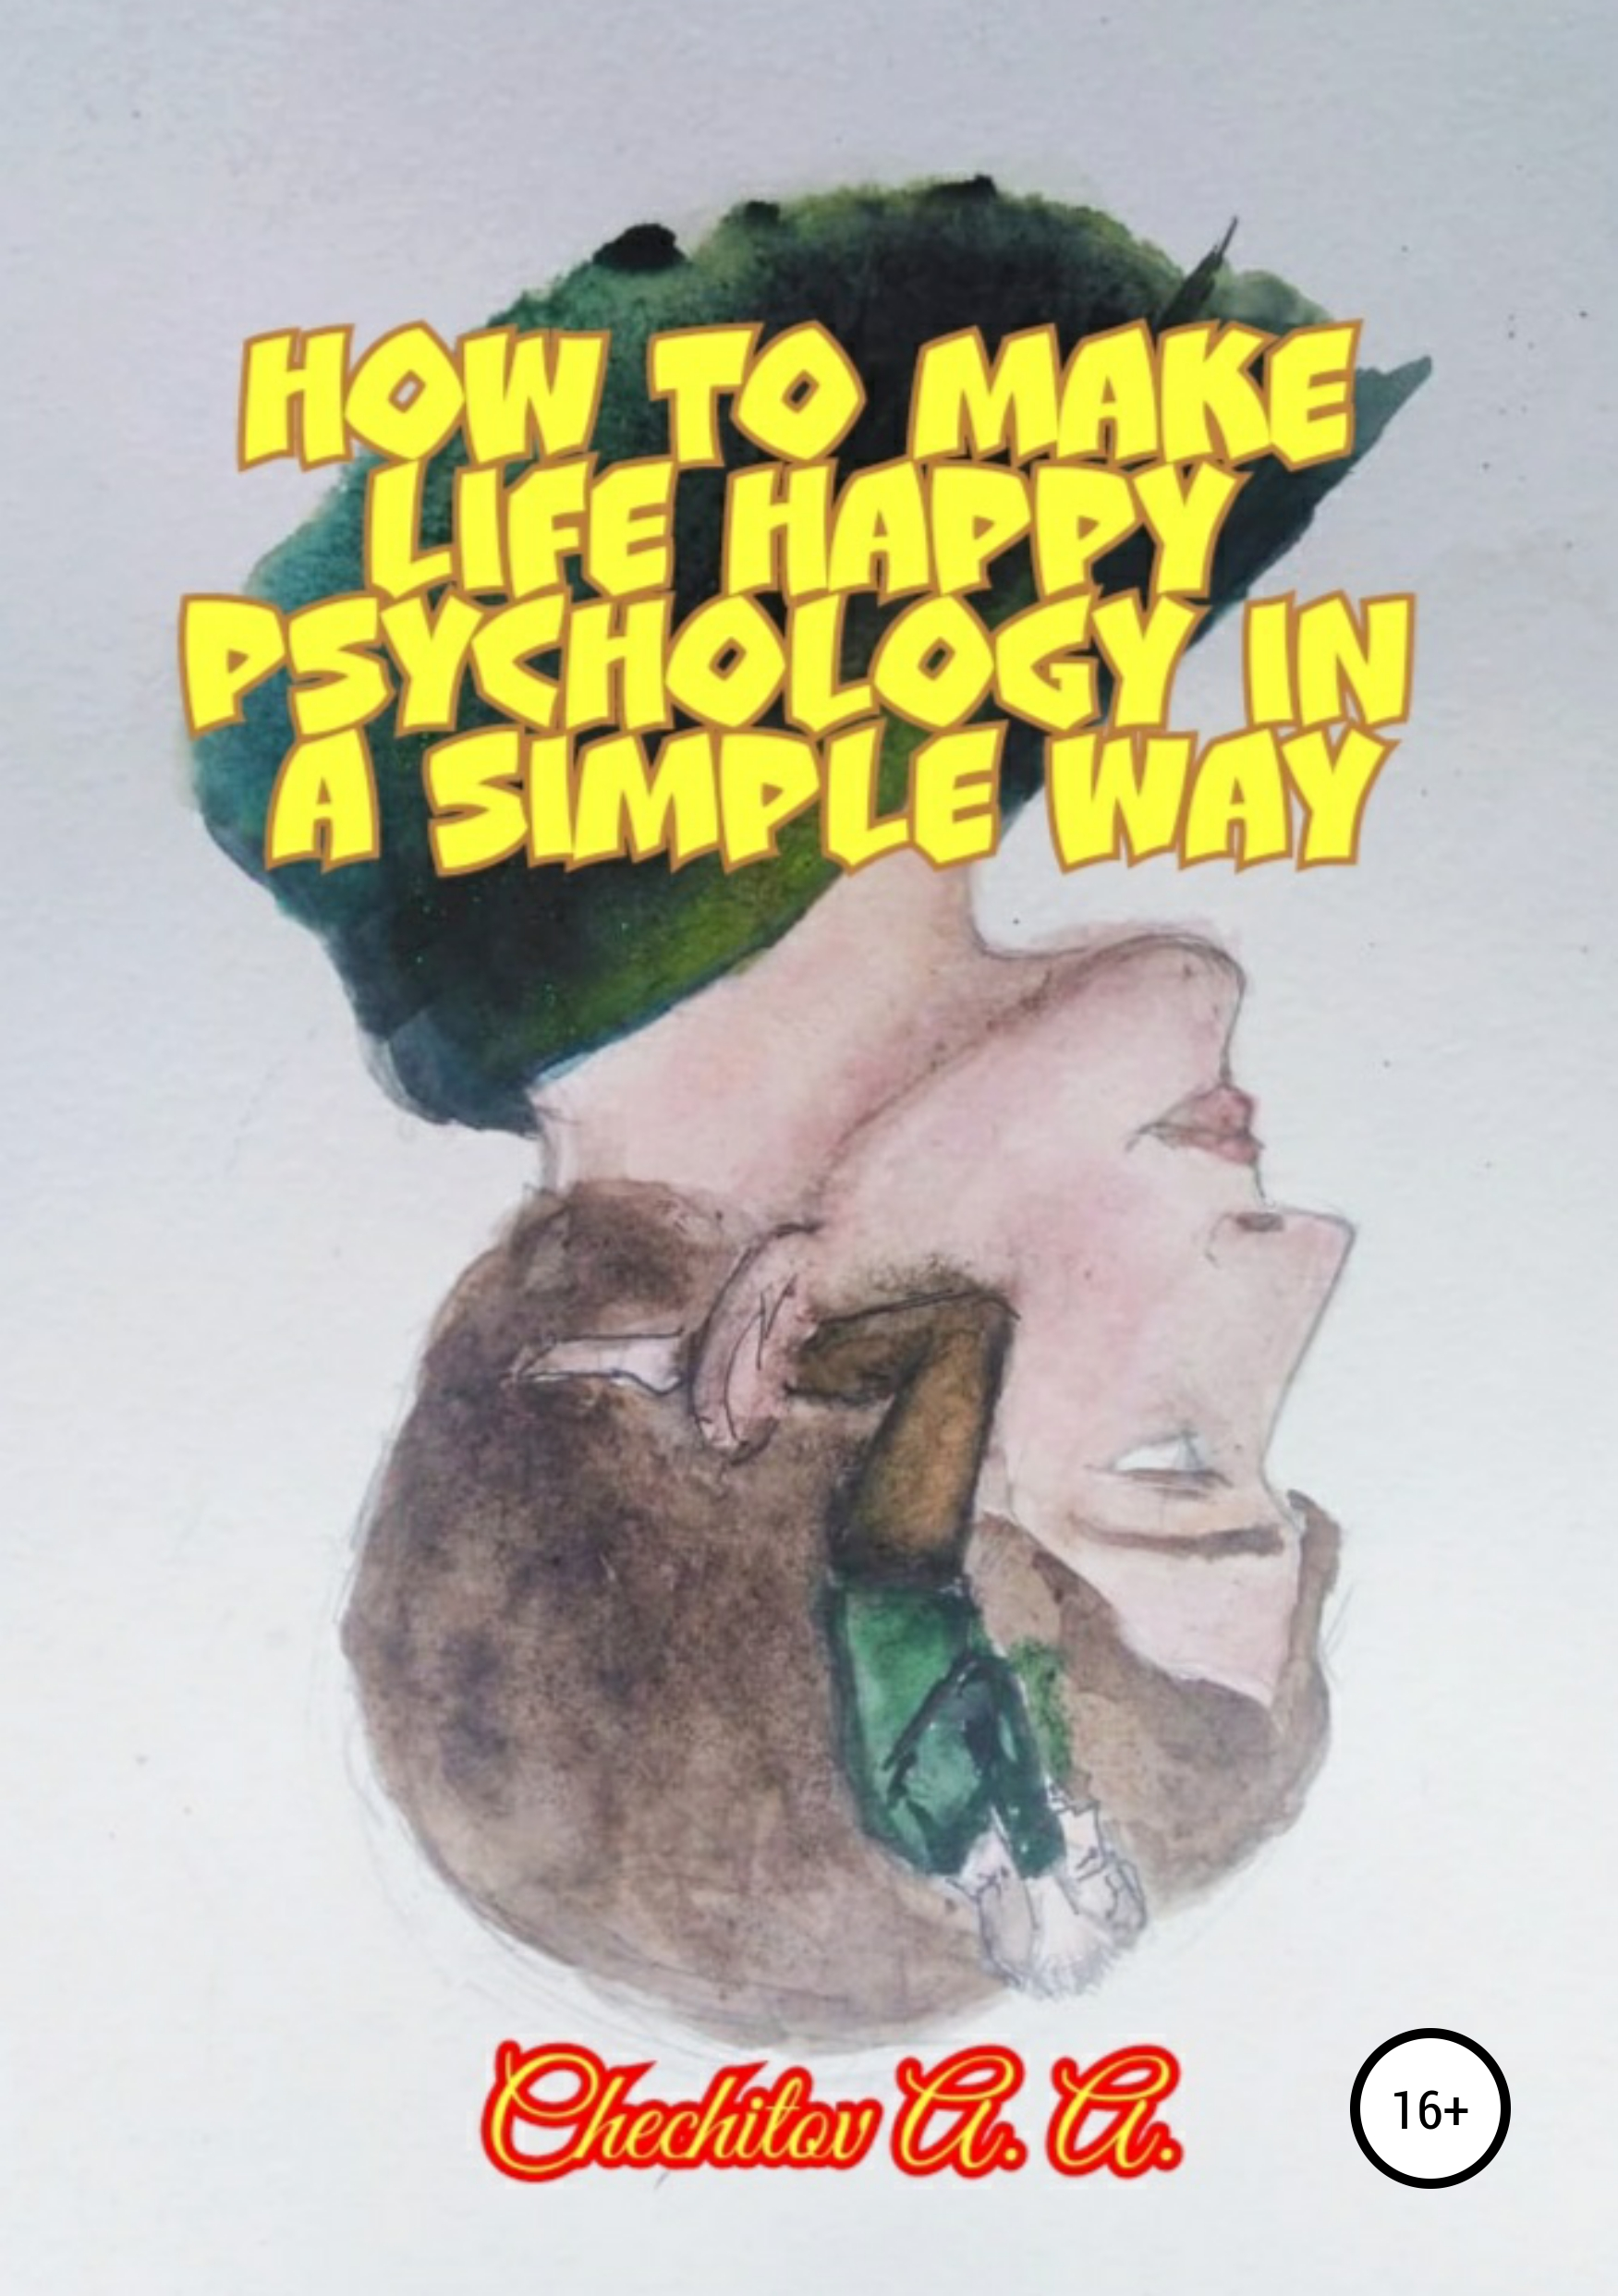 Александр Александрович Чечитов How to make life happy psychology in a simple way александр александрович чечитов дневник мечтателя